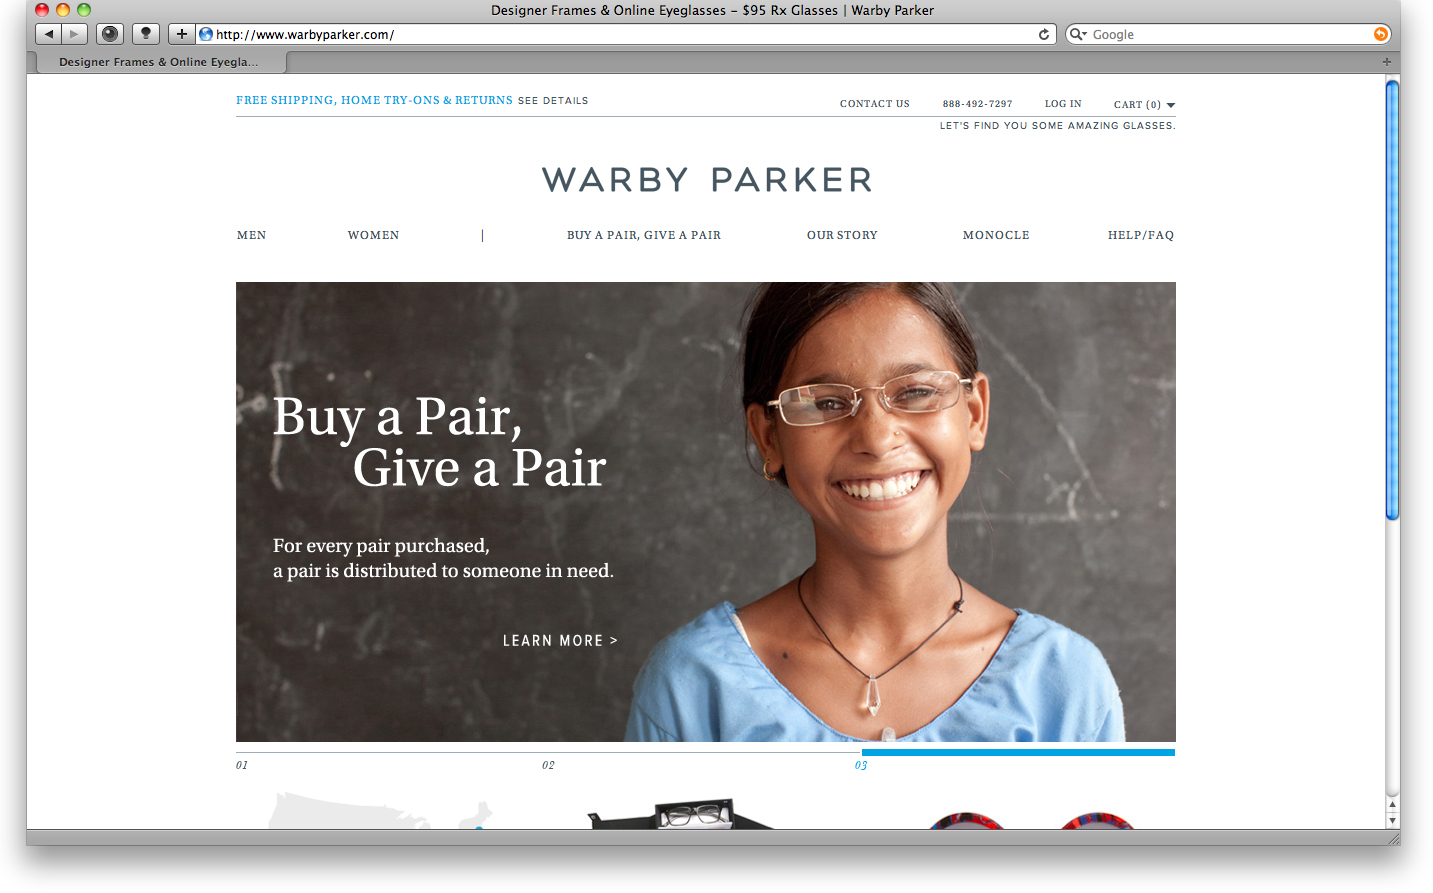 Warby Parker: A Winning E-commerce Strategy Online and Off